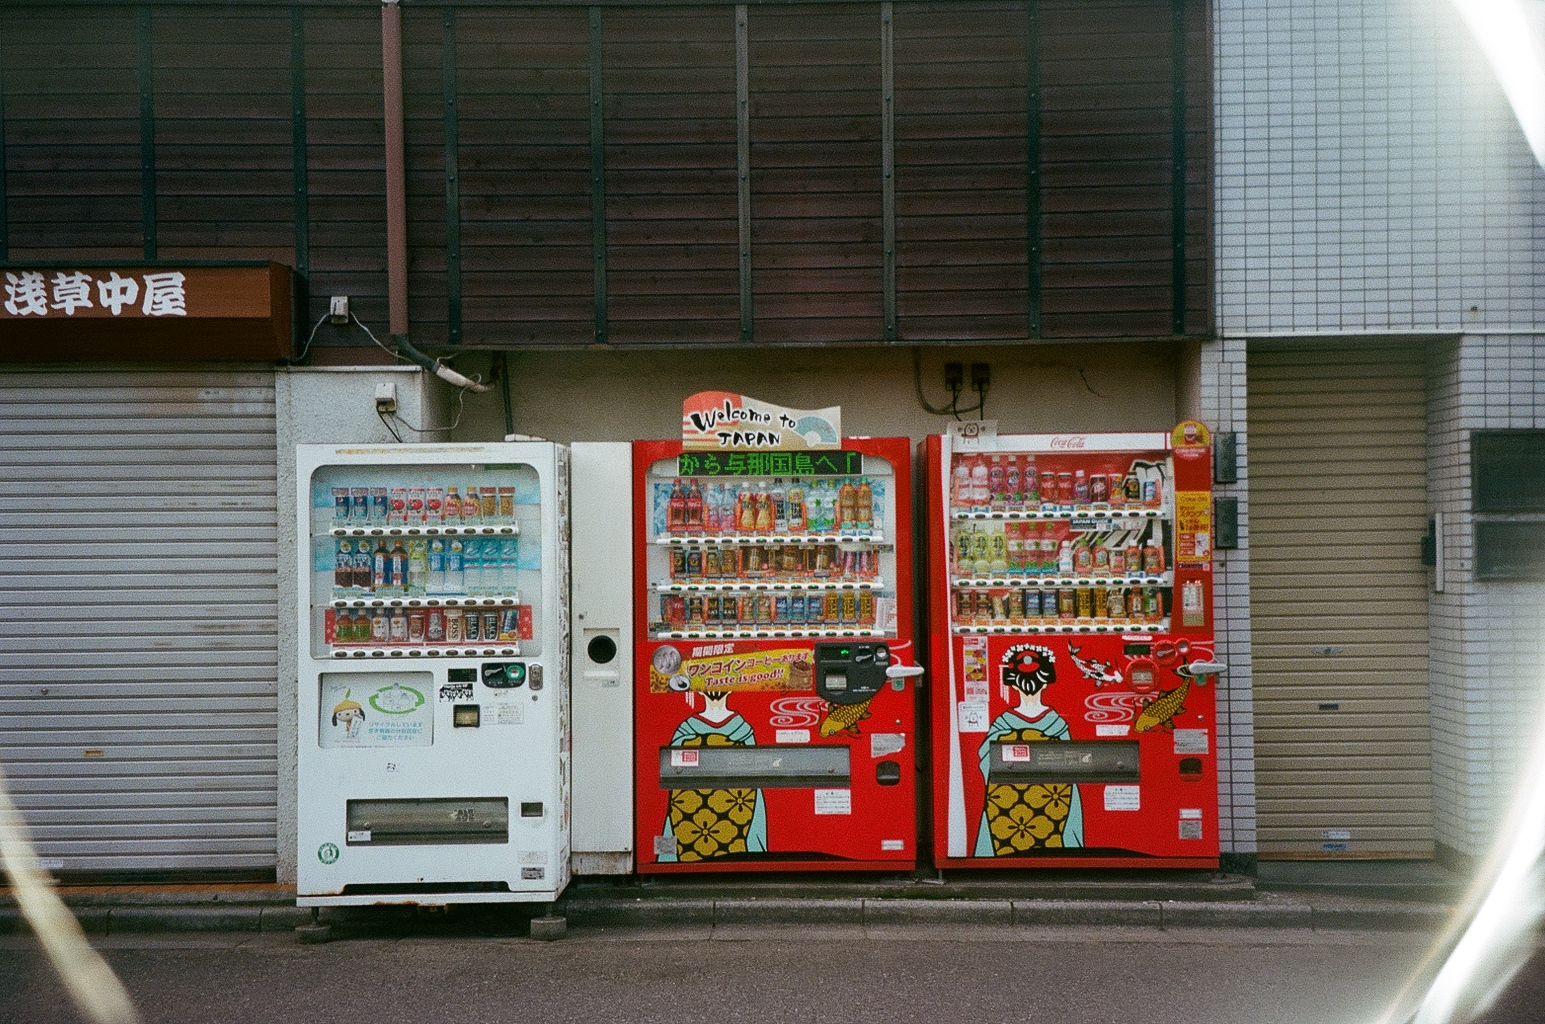 Vending machines are everywhere.  Everywhere.  They make upwards in the trillions yearly for Japan.  You try to break into one and it automatically alerts the police.  You can even get hot drinks from them.